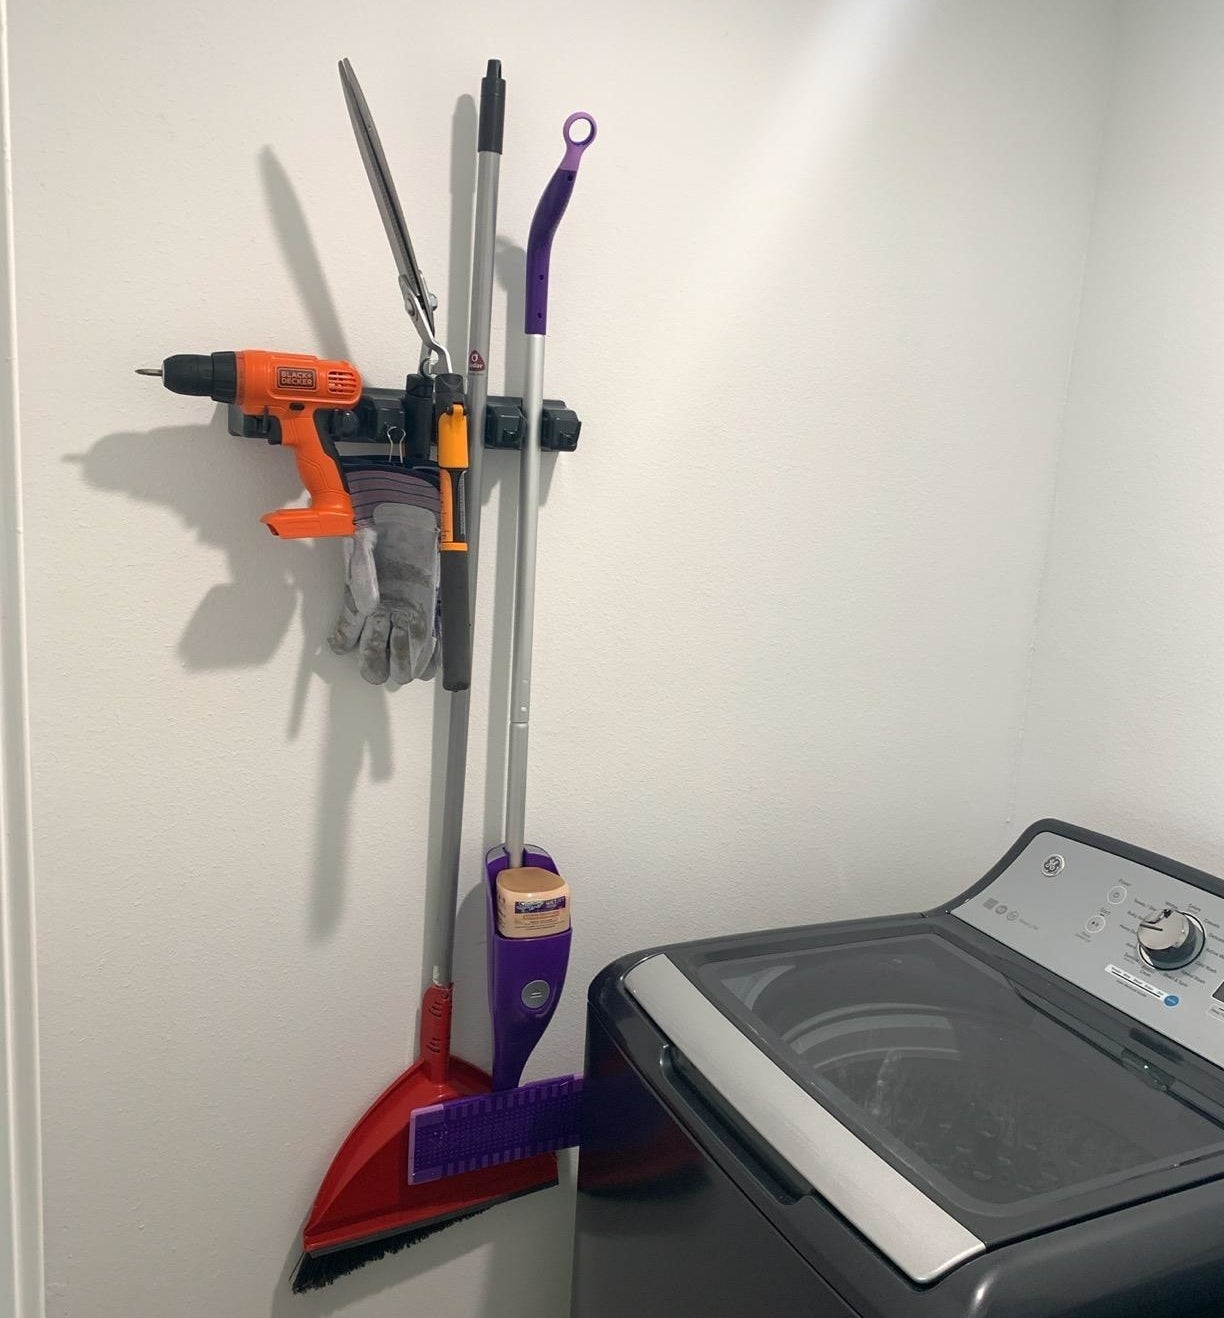 reviewer photo showing the organizer with a broom, Swiffer, and even a drill attached to it